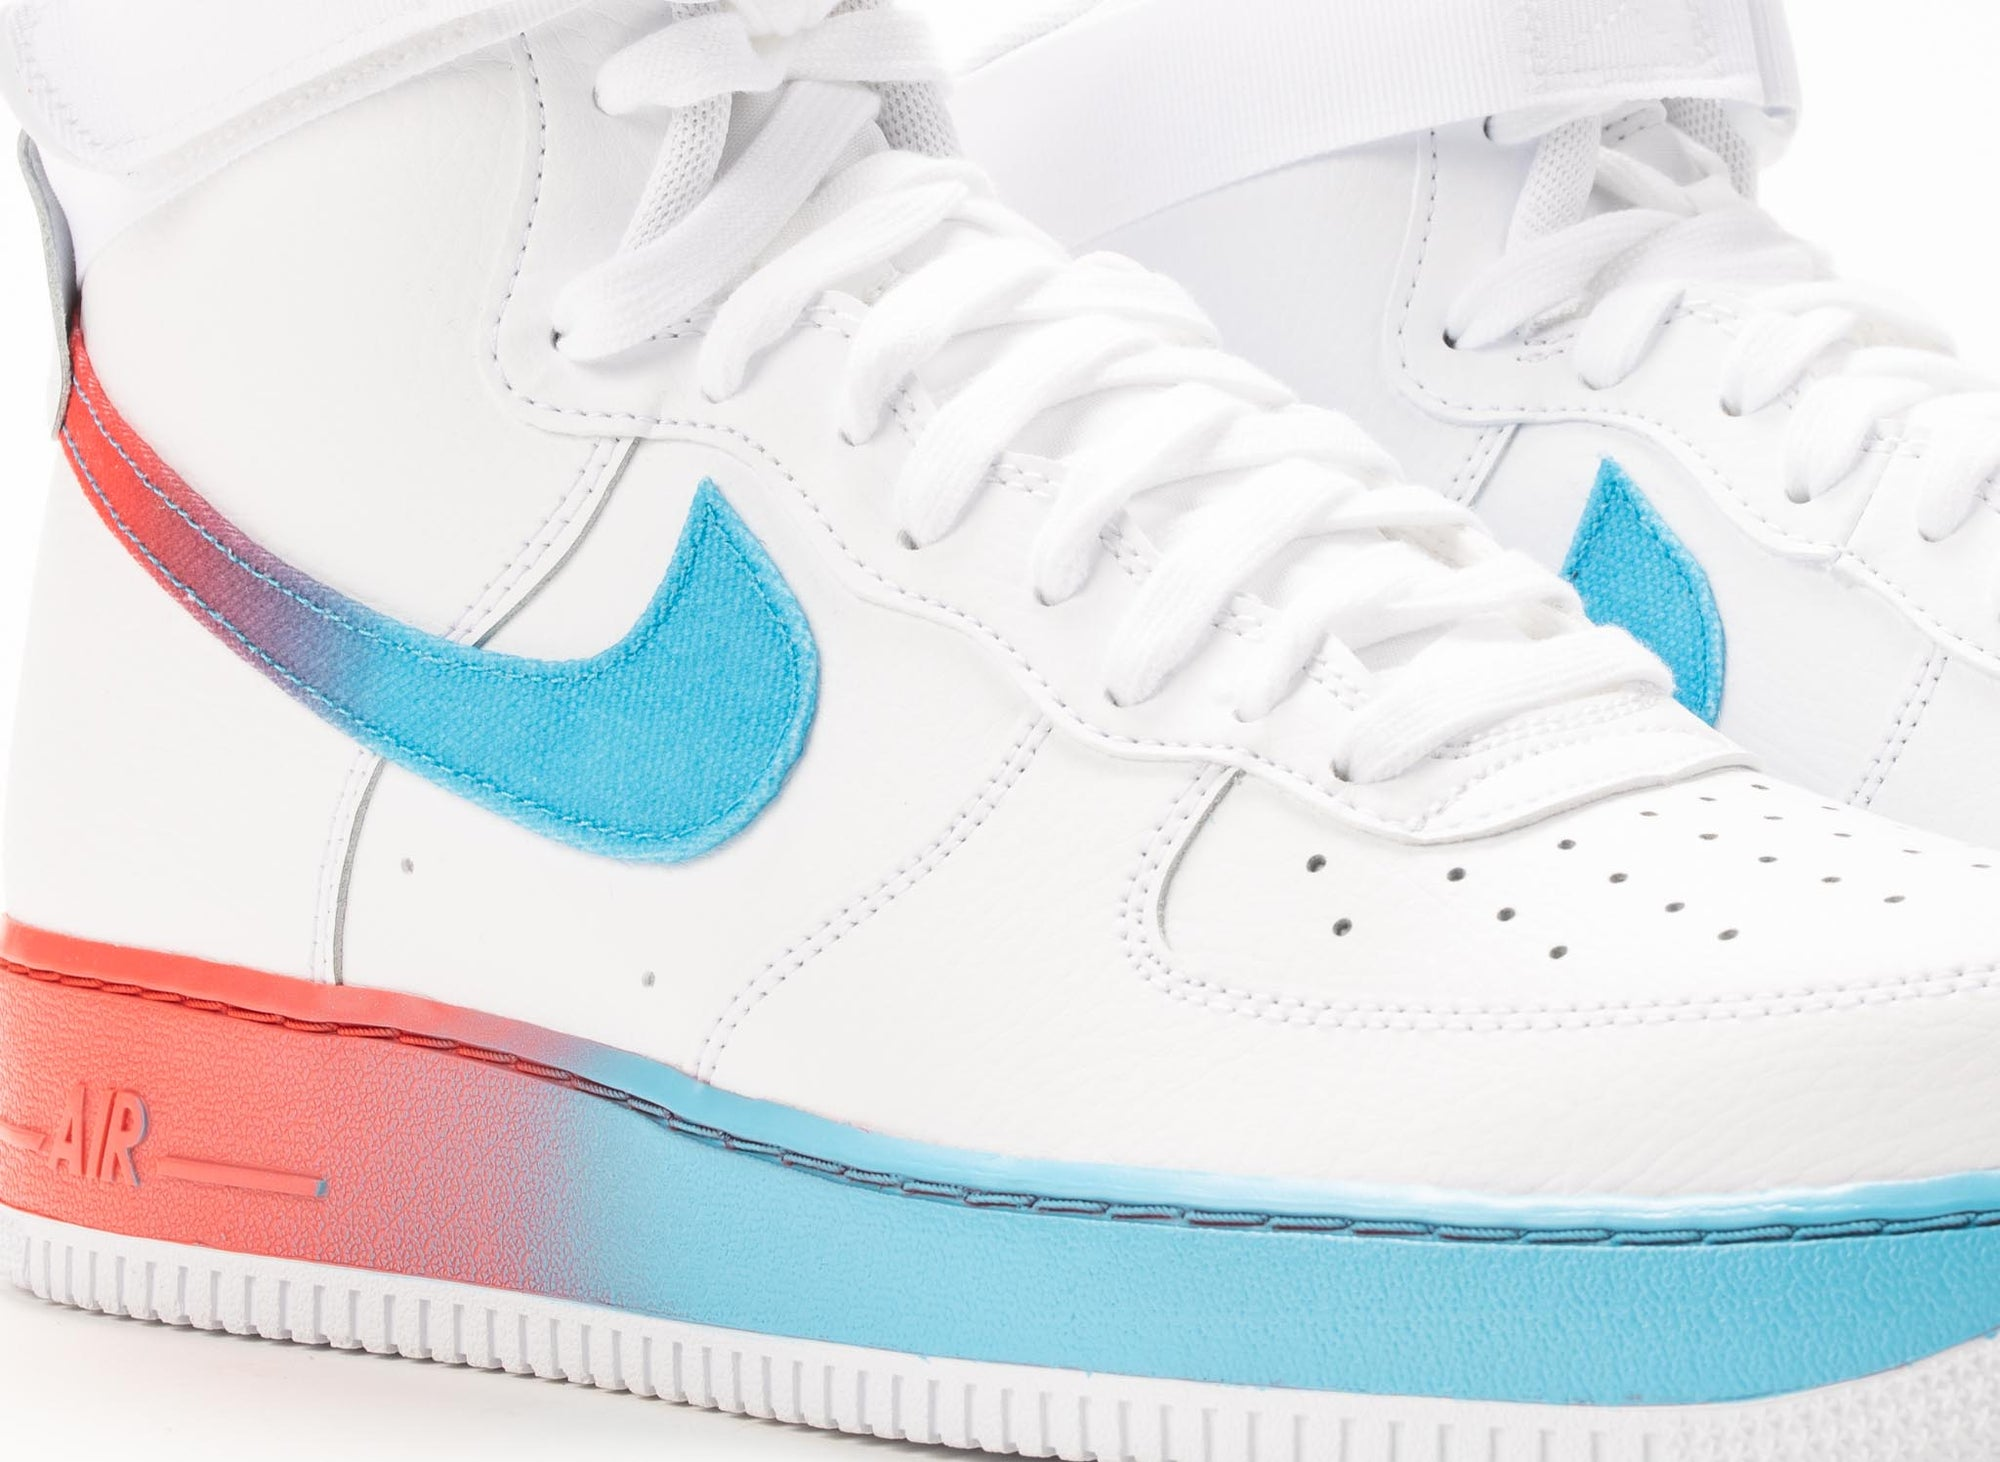 Nike Air Force 1 High 07 LV8 'Ember Glow' Oneness Boutique